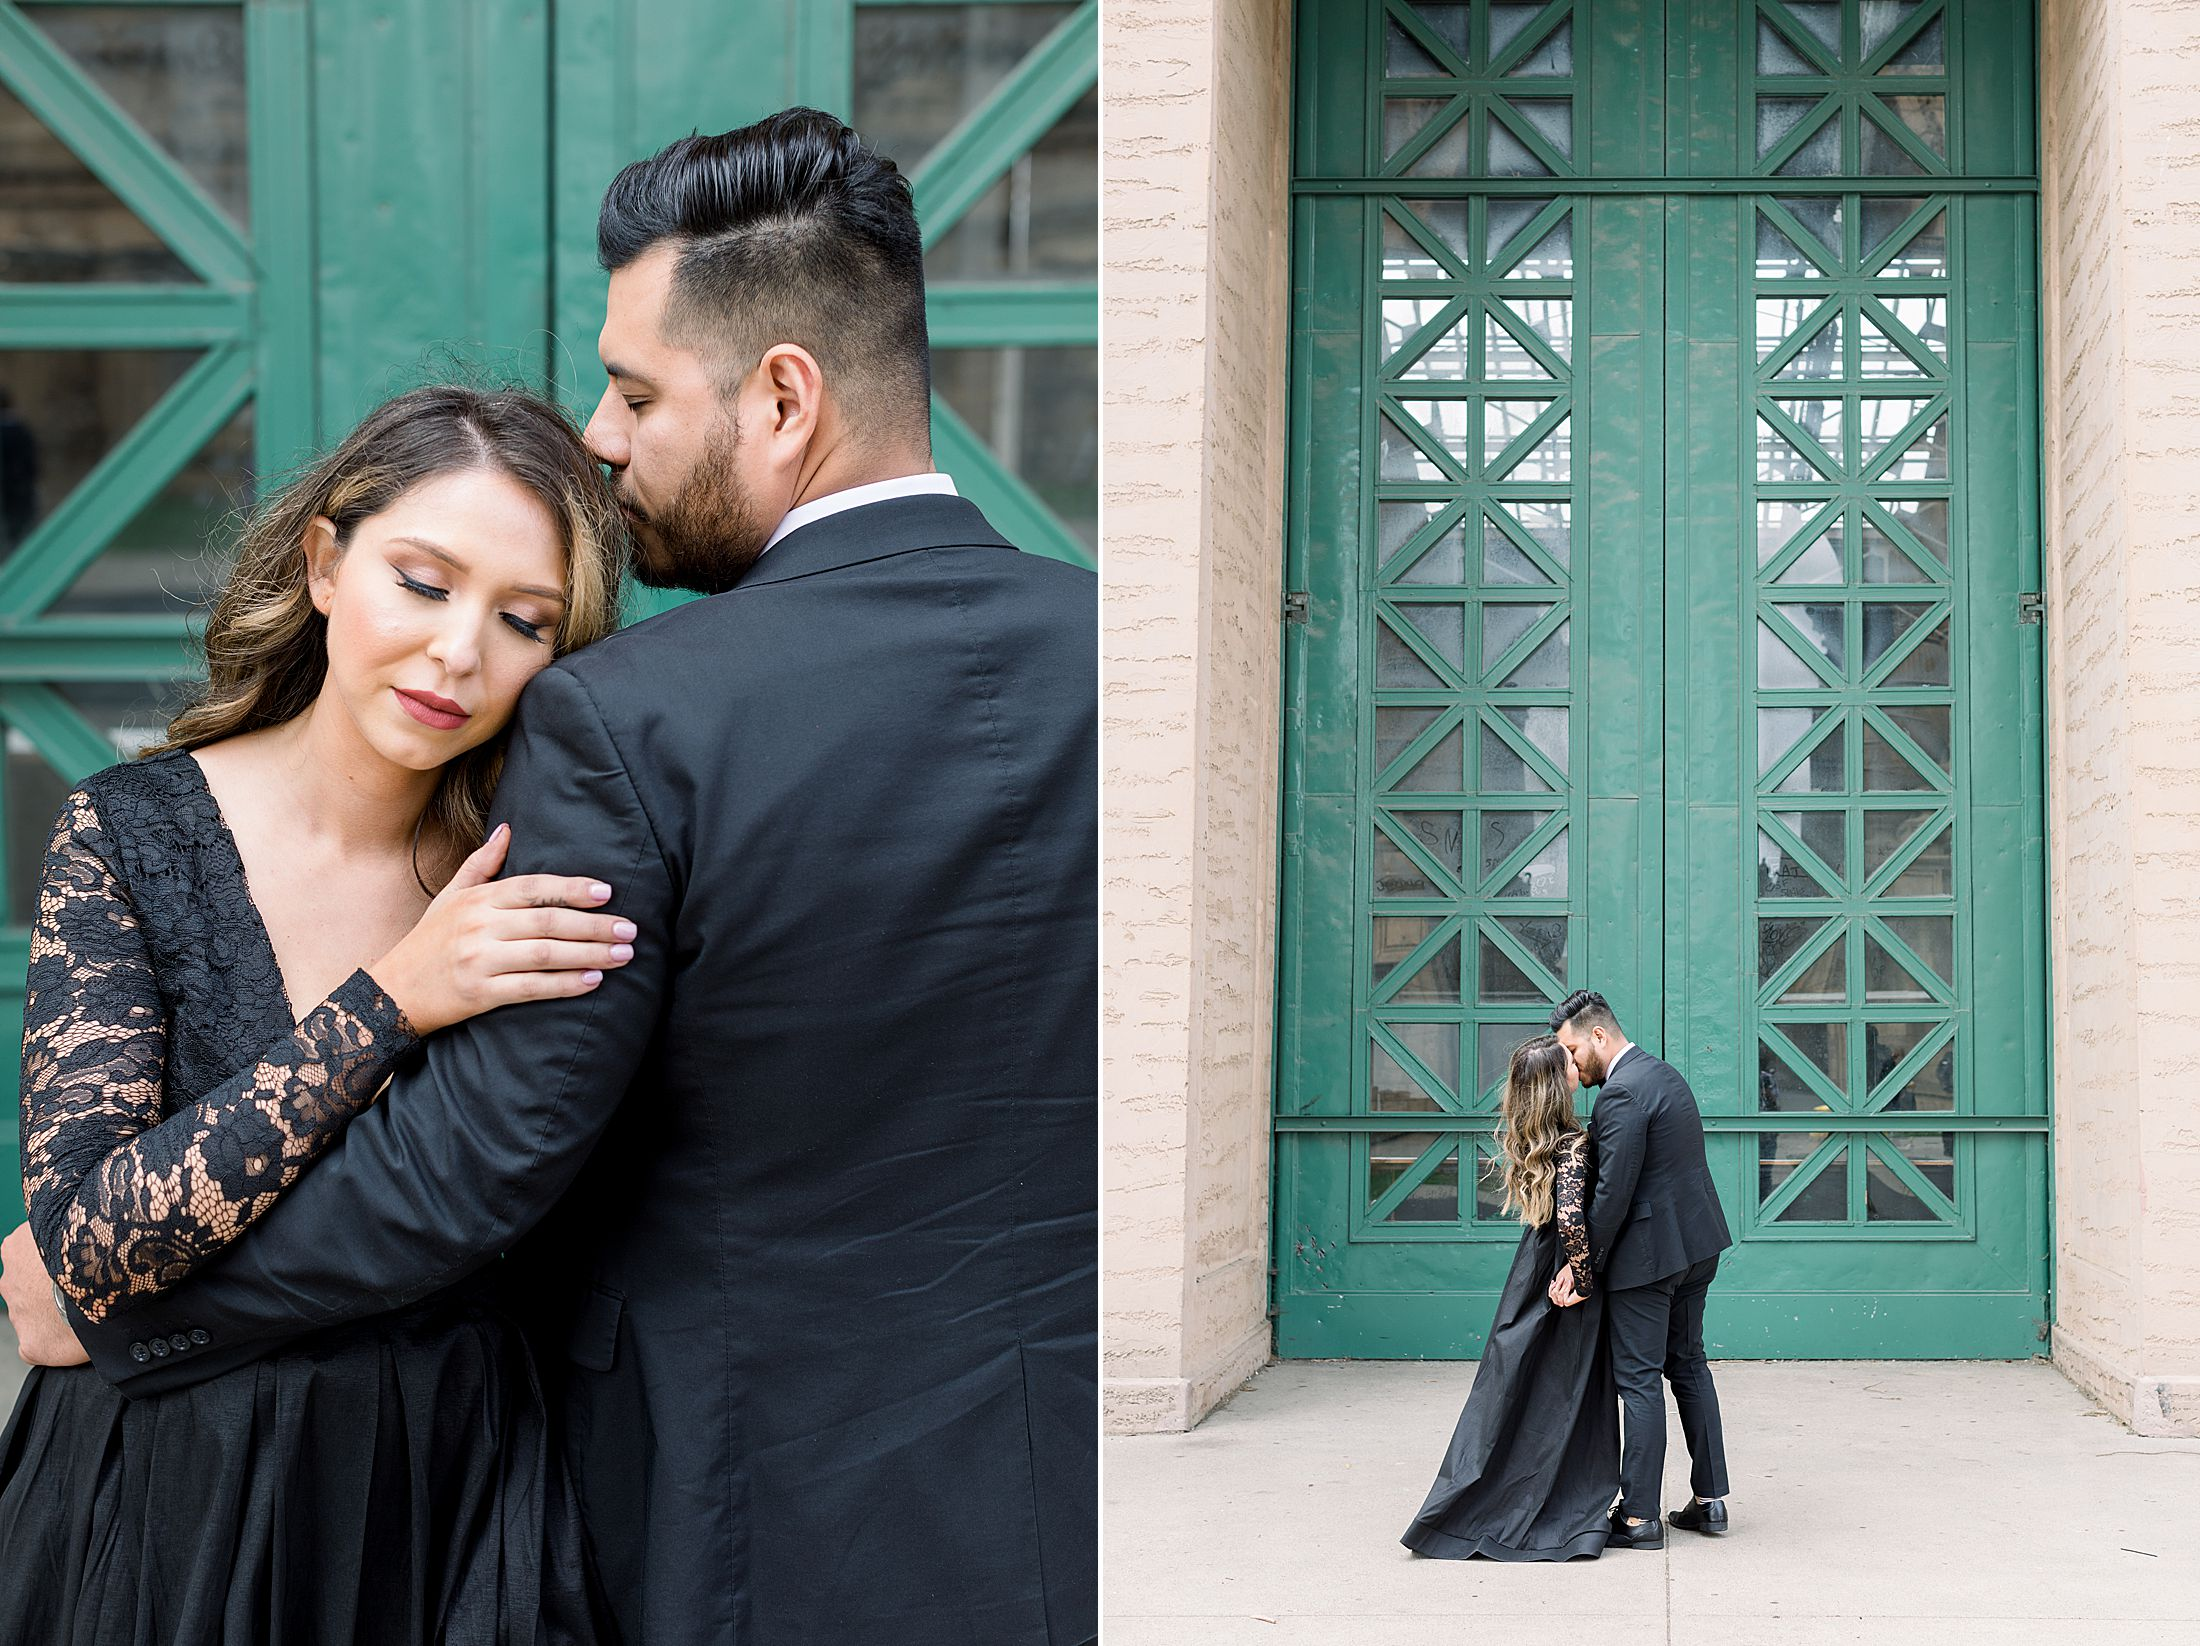 SF City Hall Black Tie Engagement and Palace of Fine Arts Engagement - Ashley Baumgartner - Esmeralda and Jesus - SF Wedding Photographer_0023.jpg